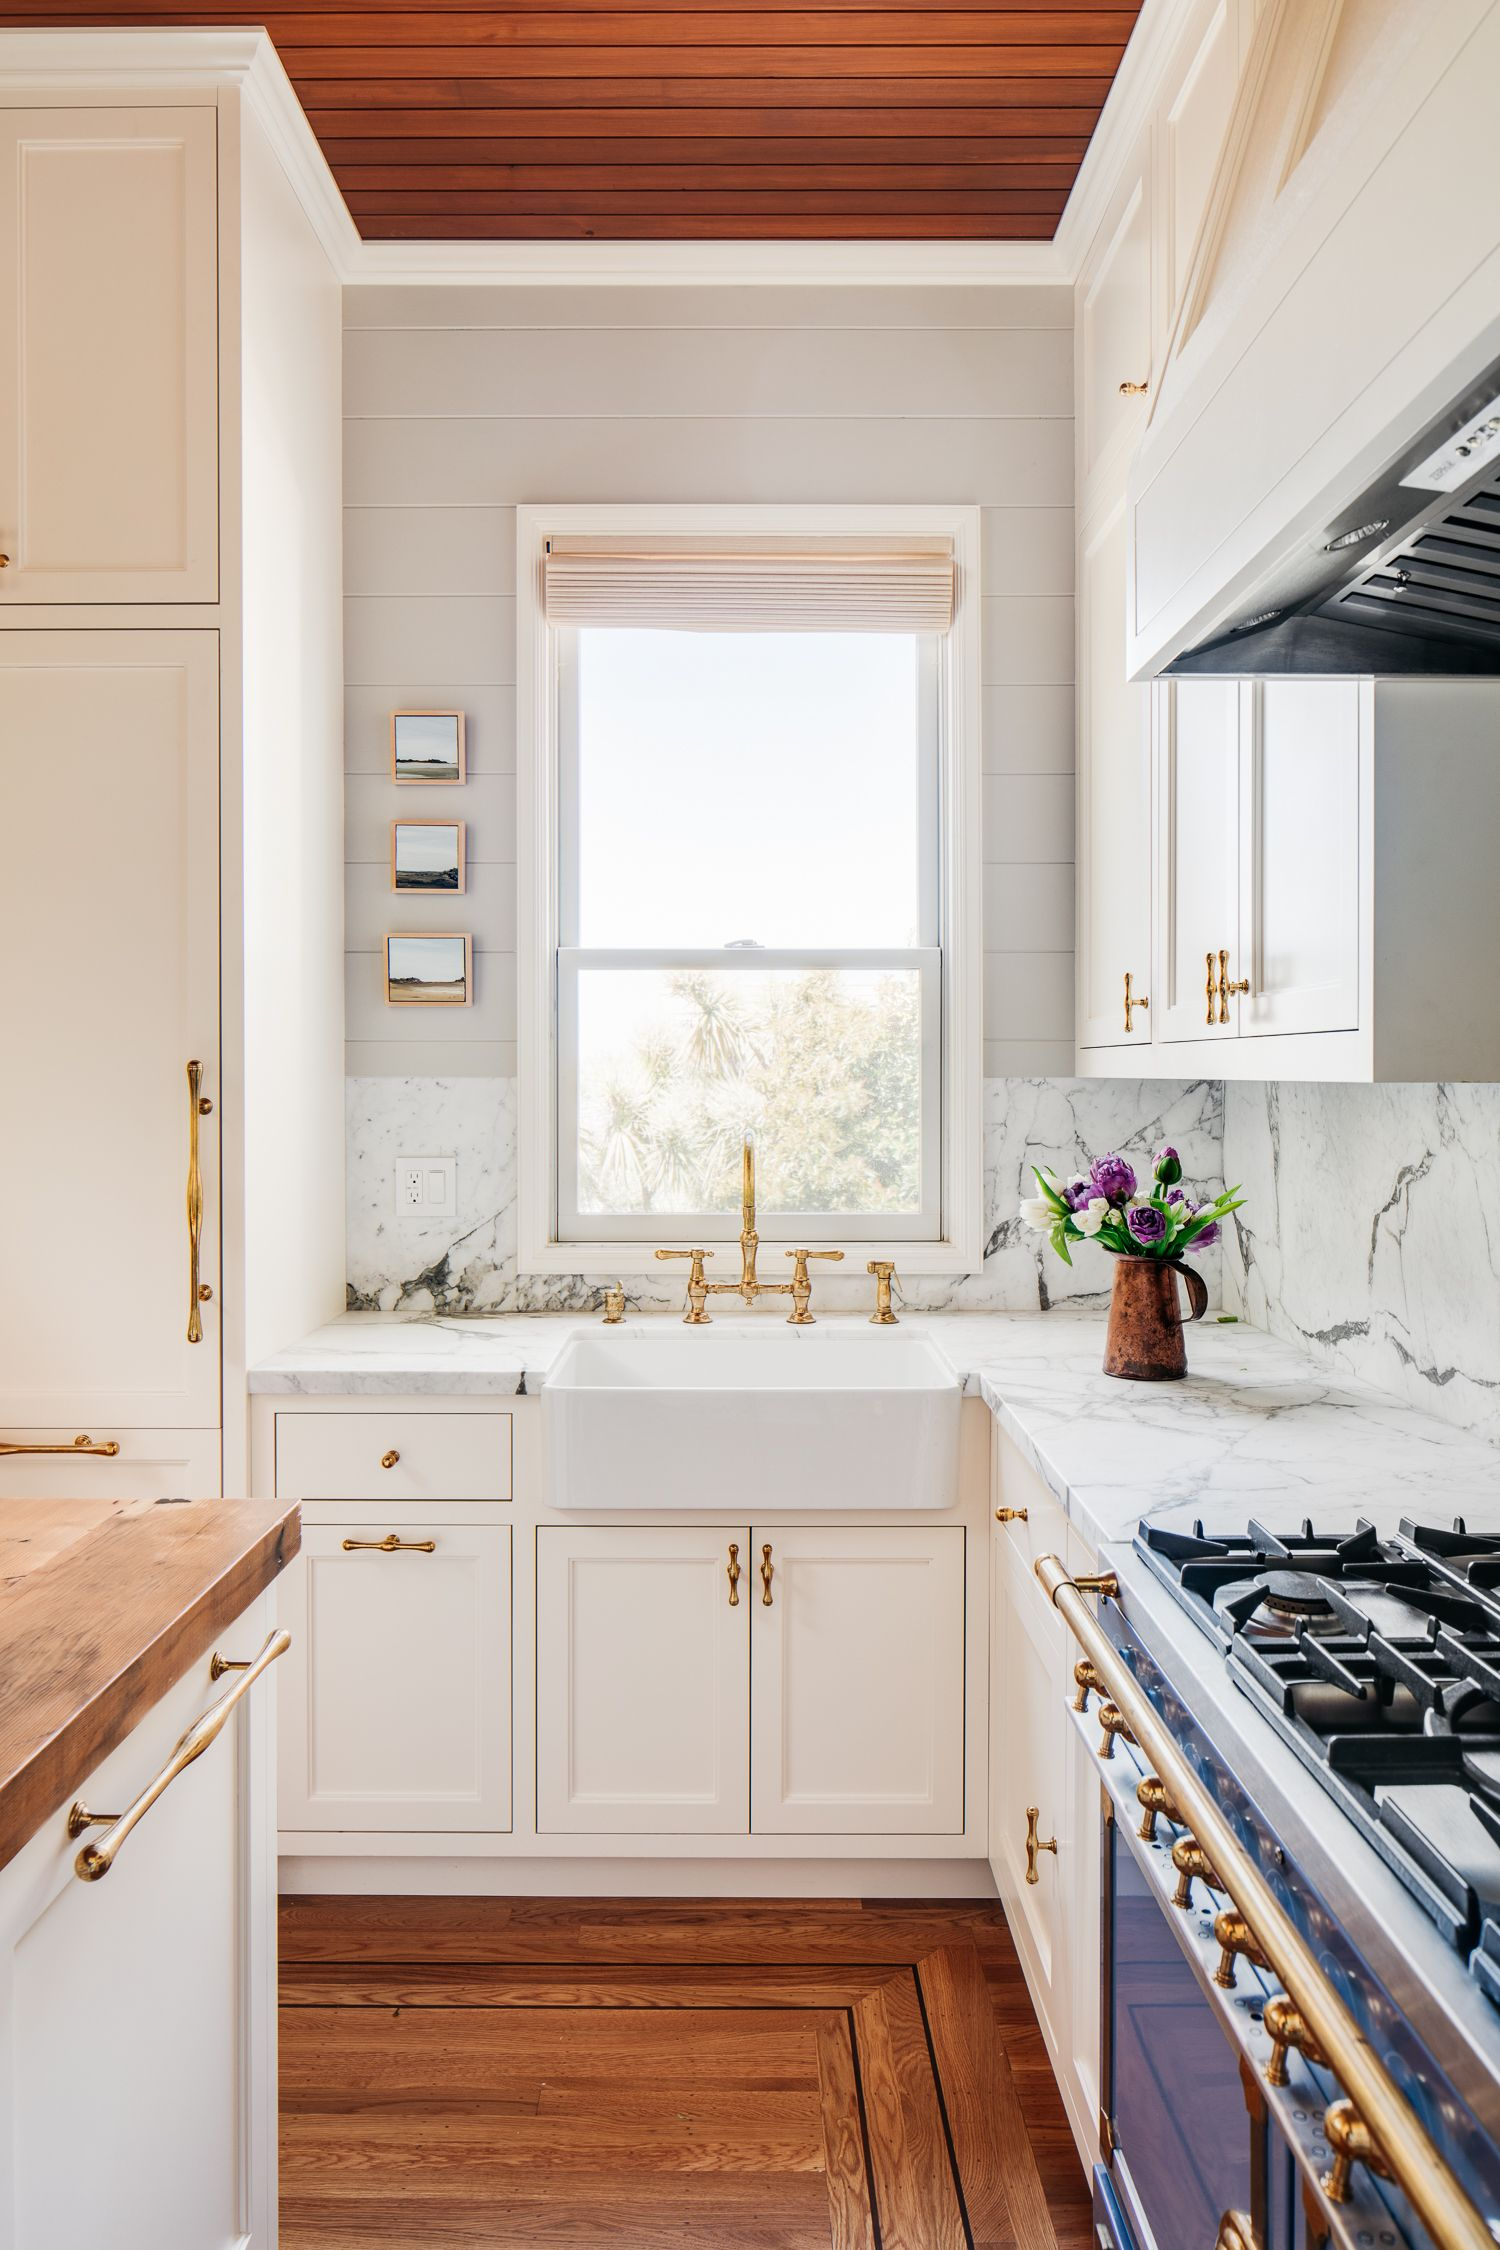 An antique white porcelain farmhouse sink and solid brass